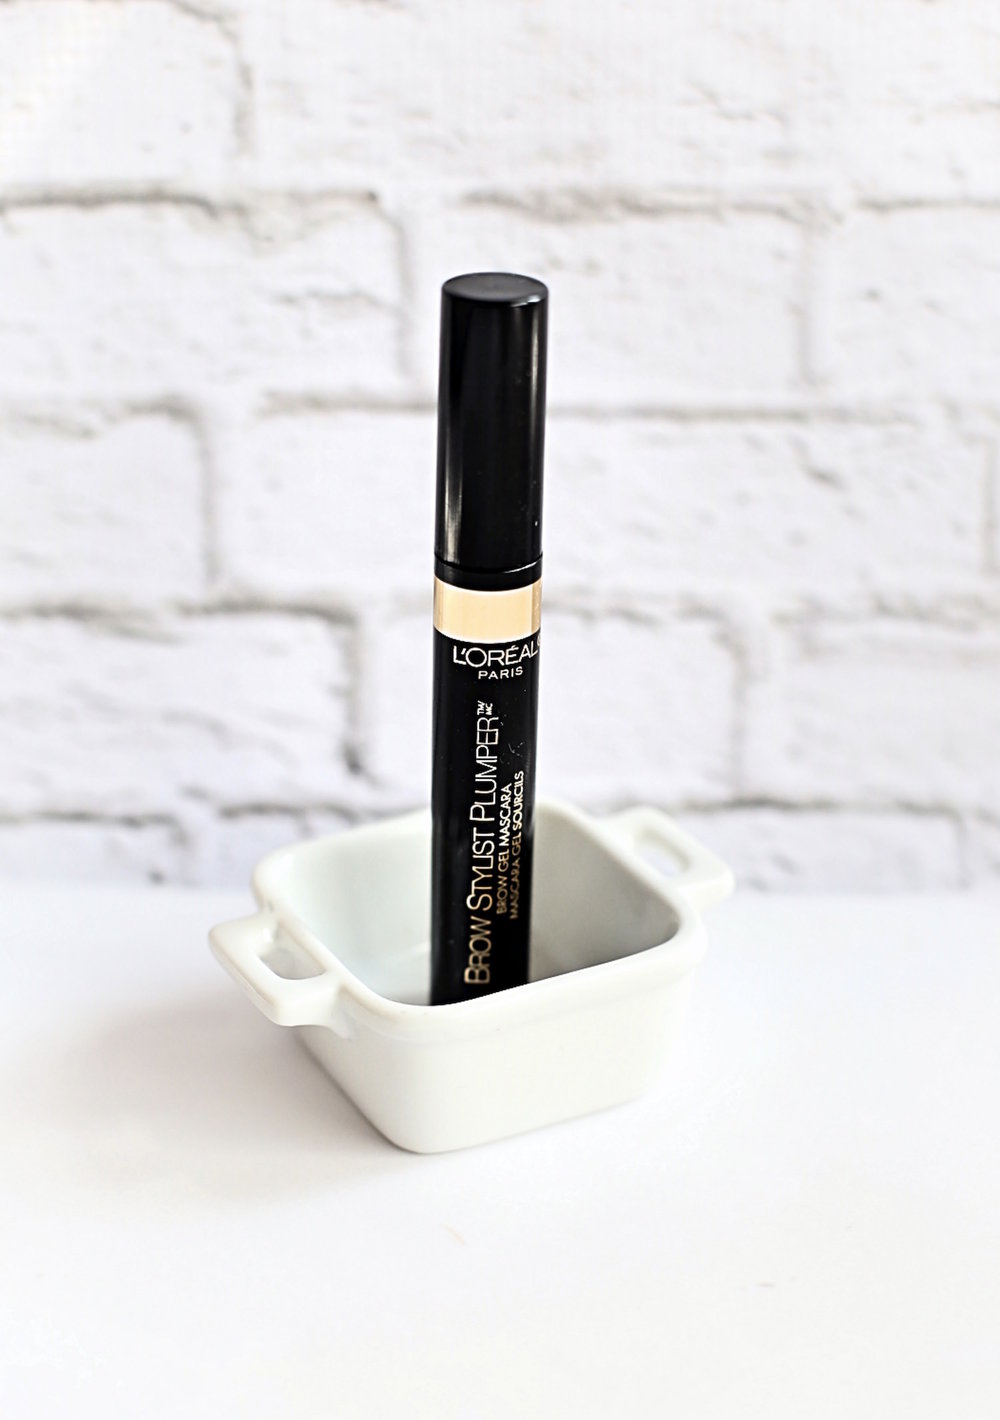 My Favorite Drugstore Makeup Products - Loreal Brow Stylist Plumper | TrufflesandTrends.com